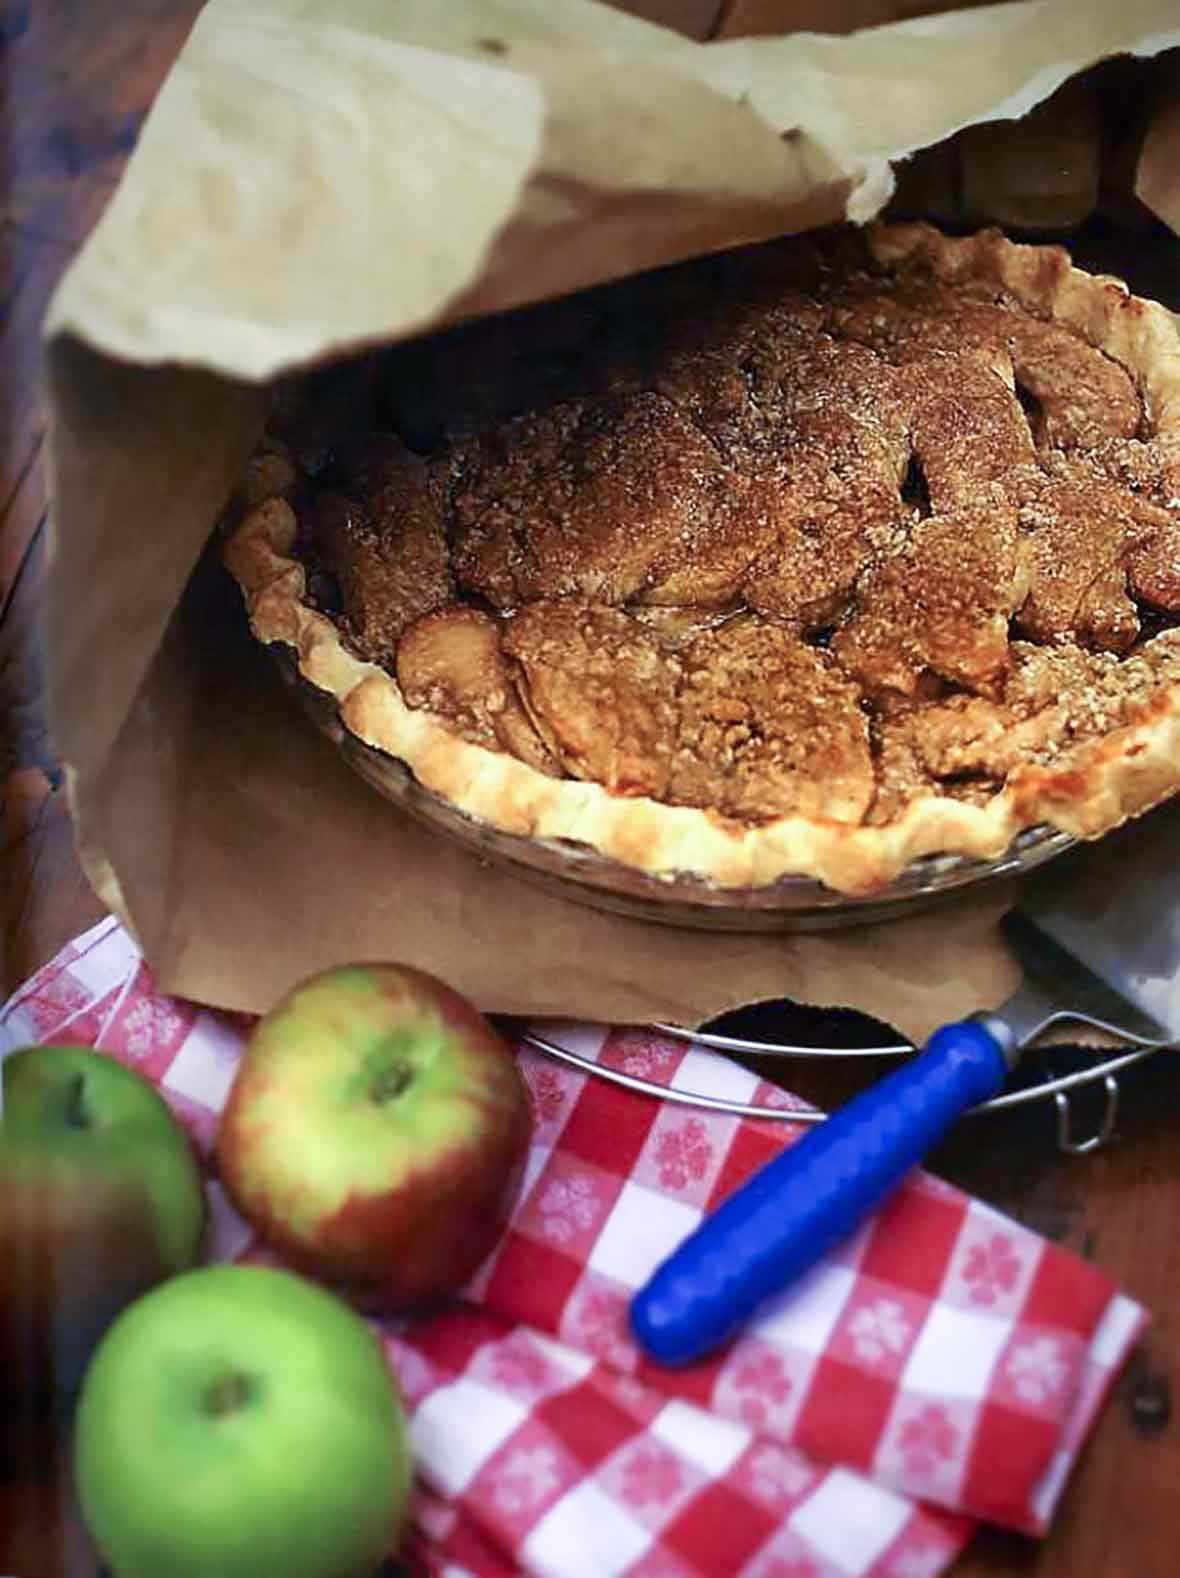 A cooked brown-bag apple pie inside a torn paper bag